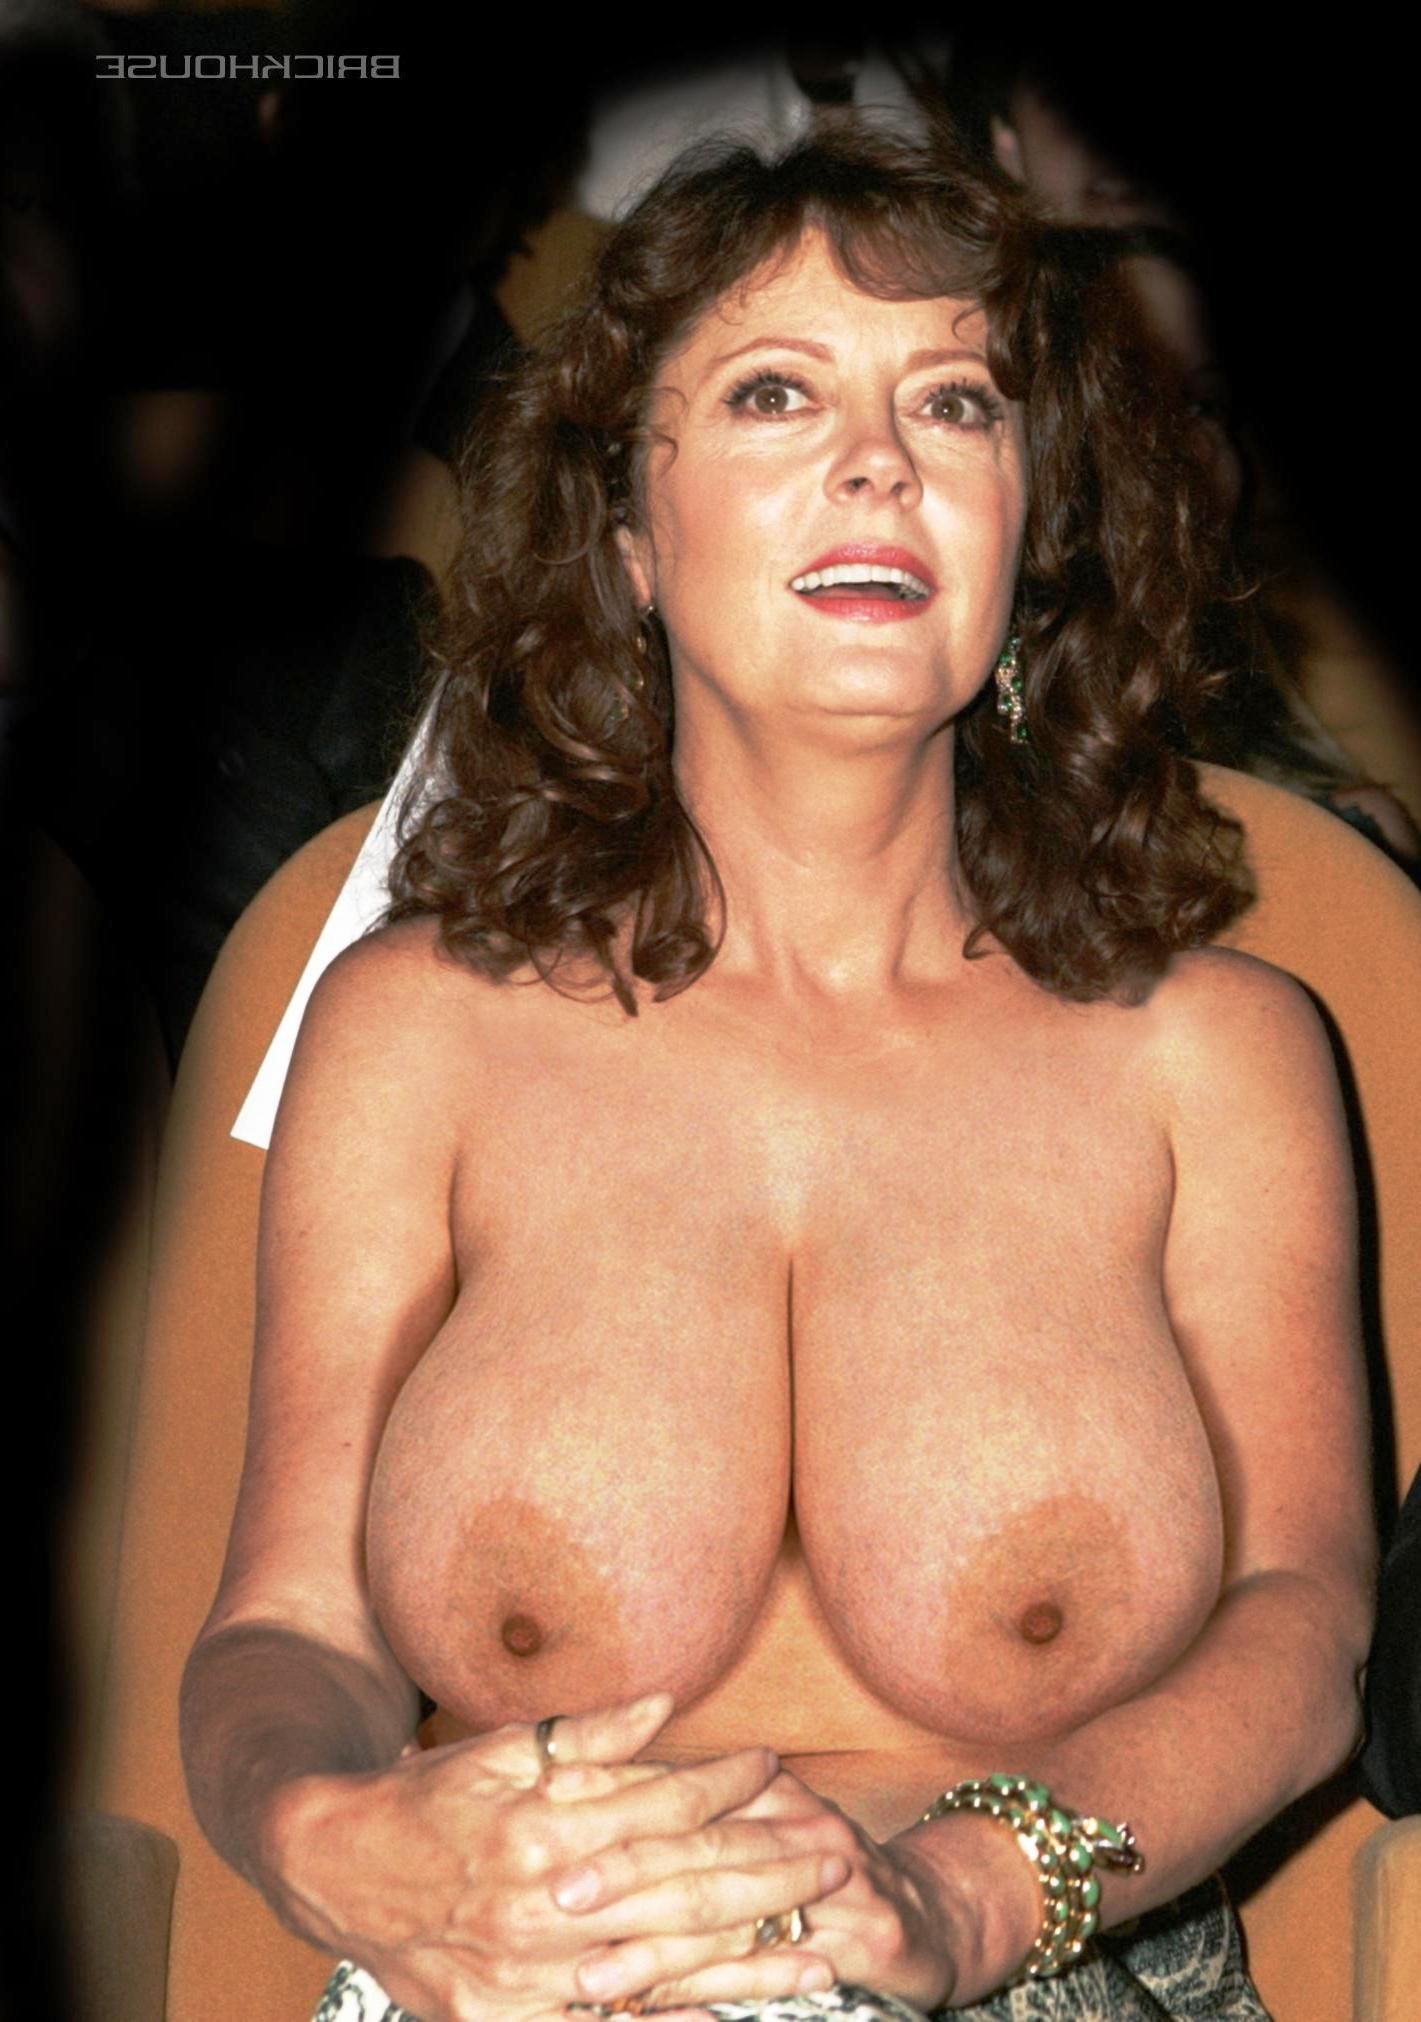 Mature celebrities naked 1